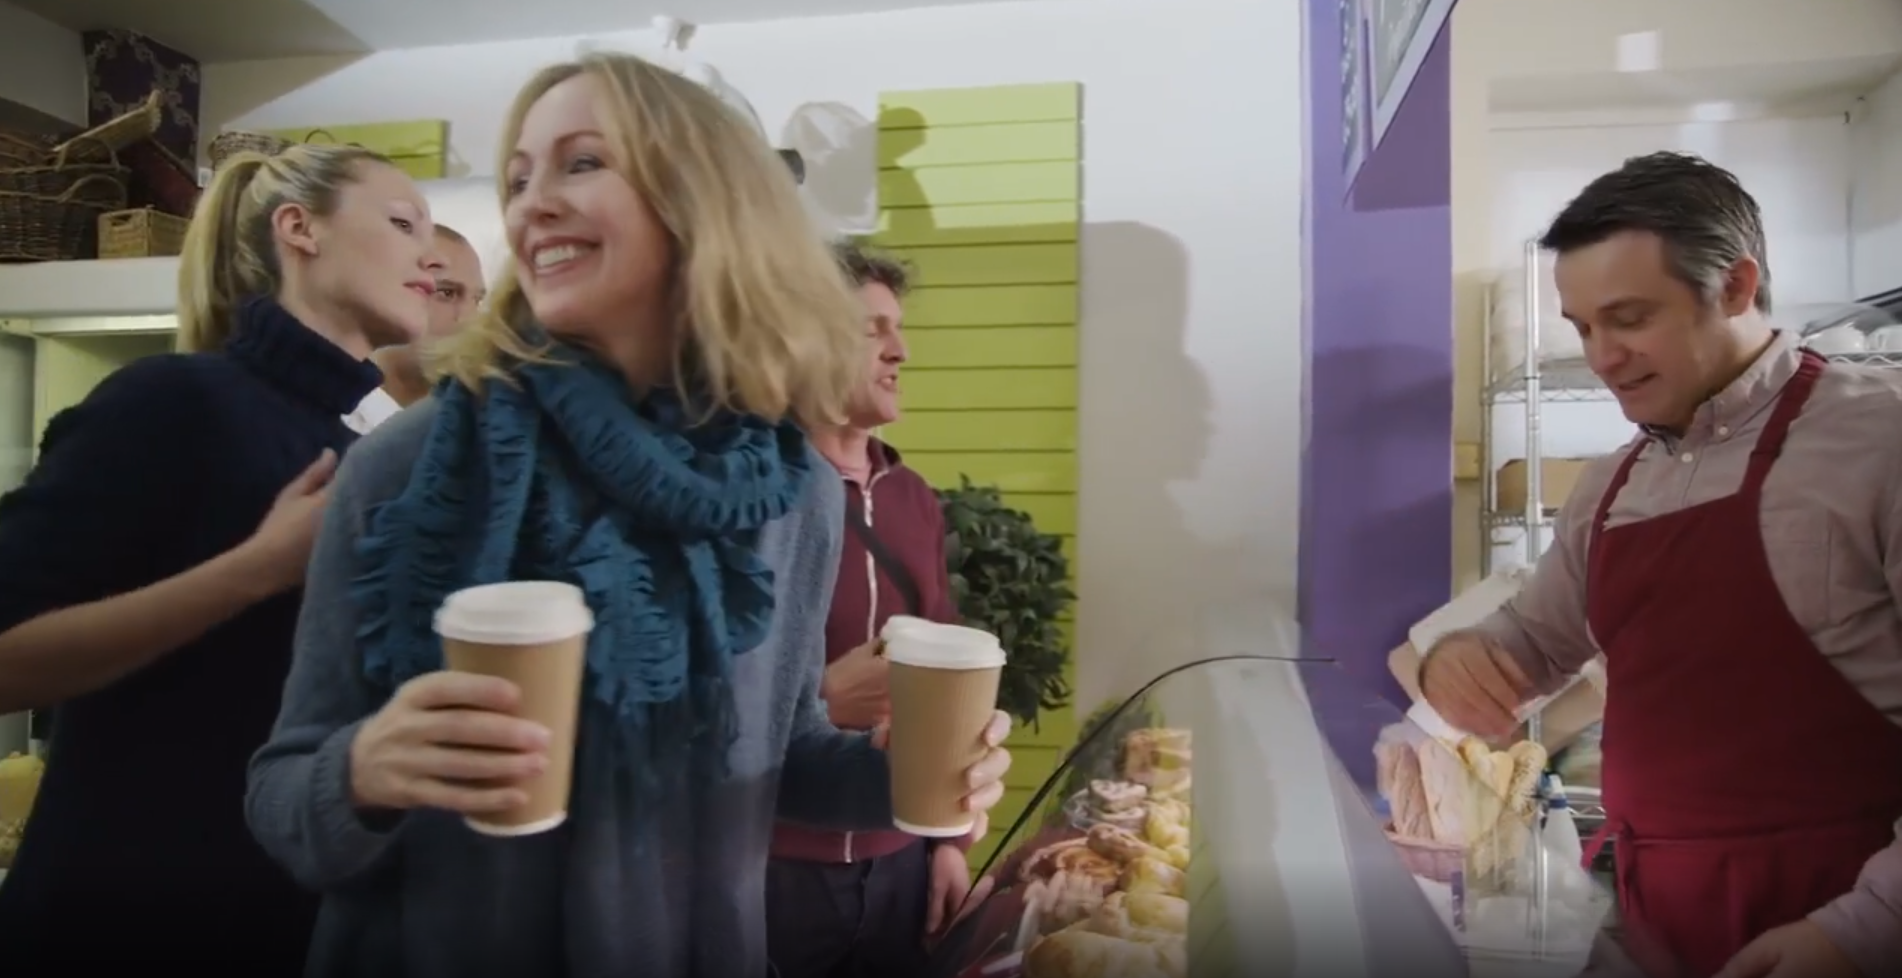 video background showing customers in a restaurant